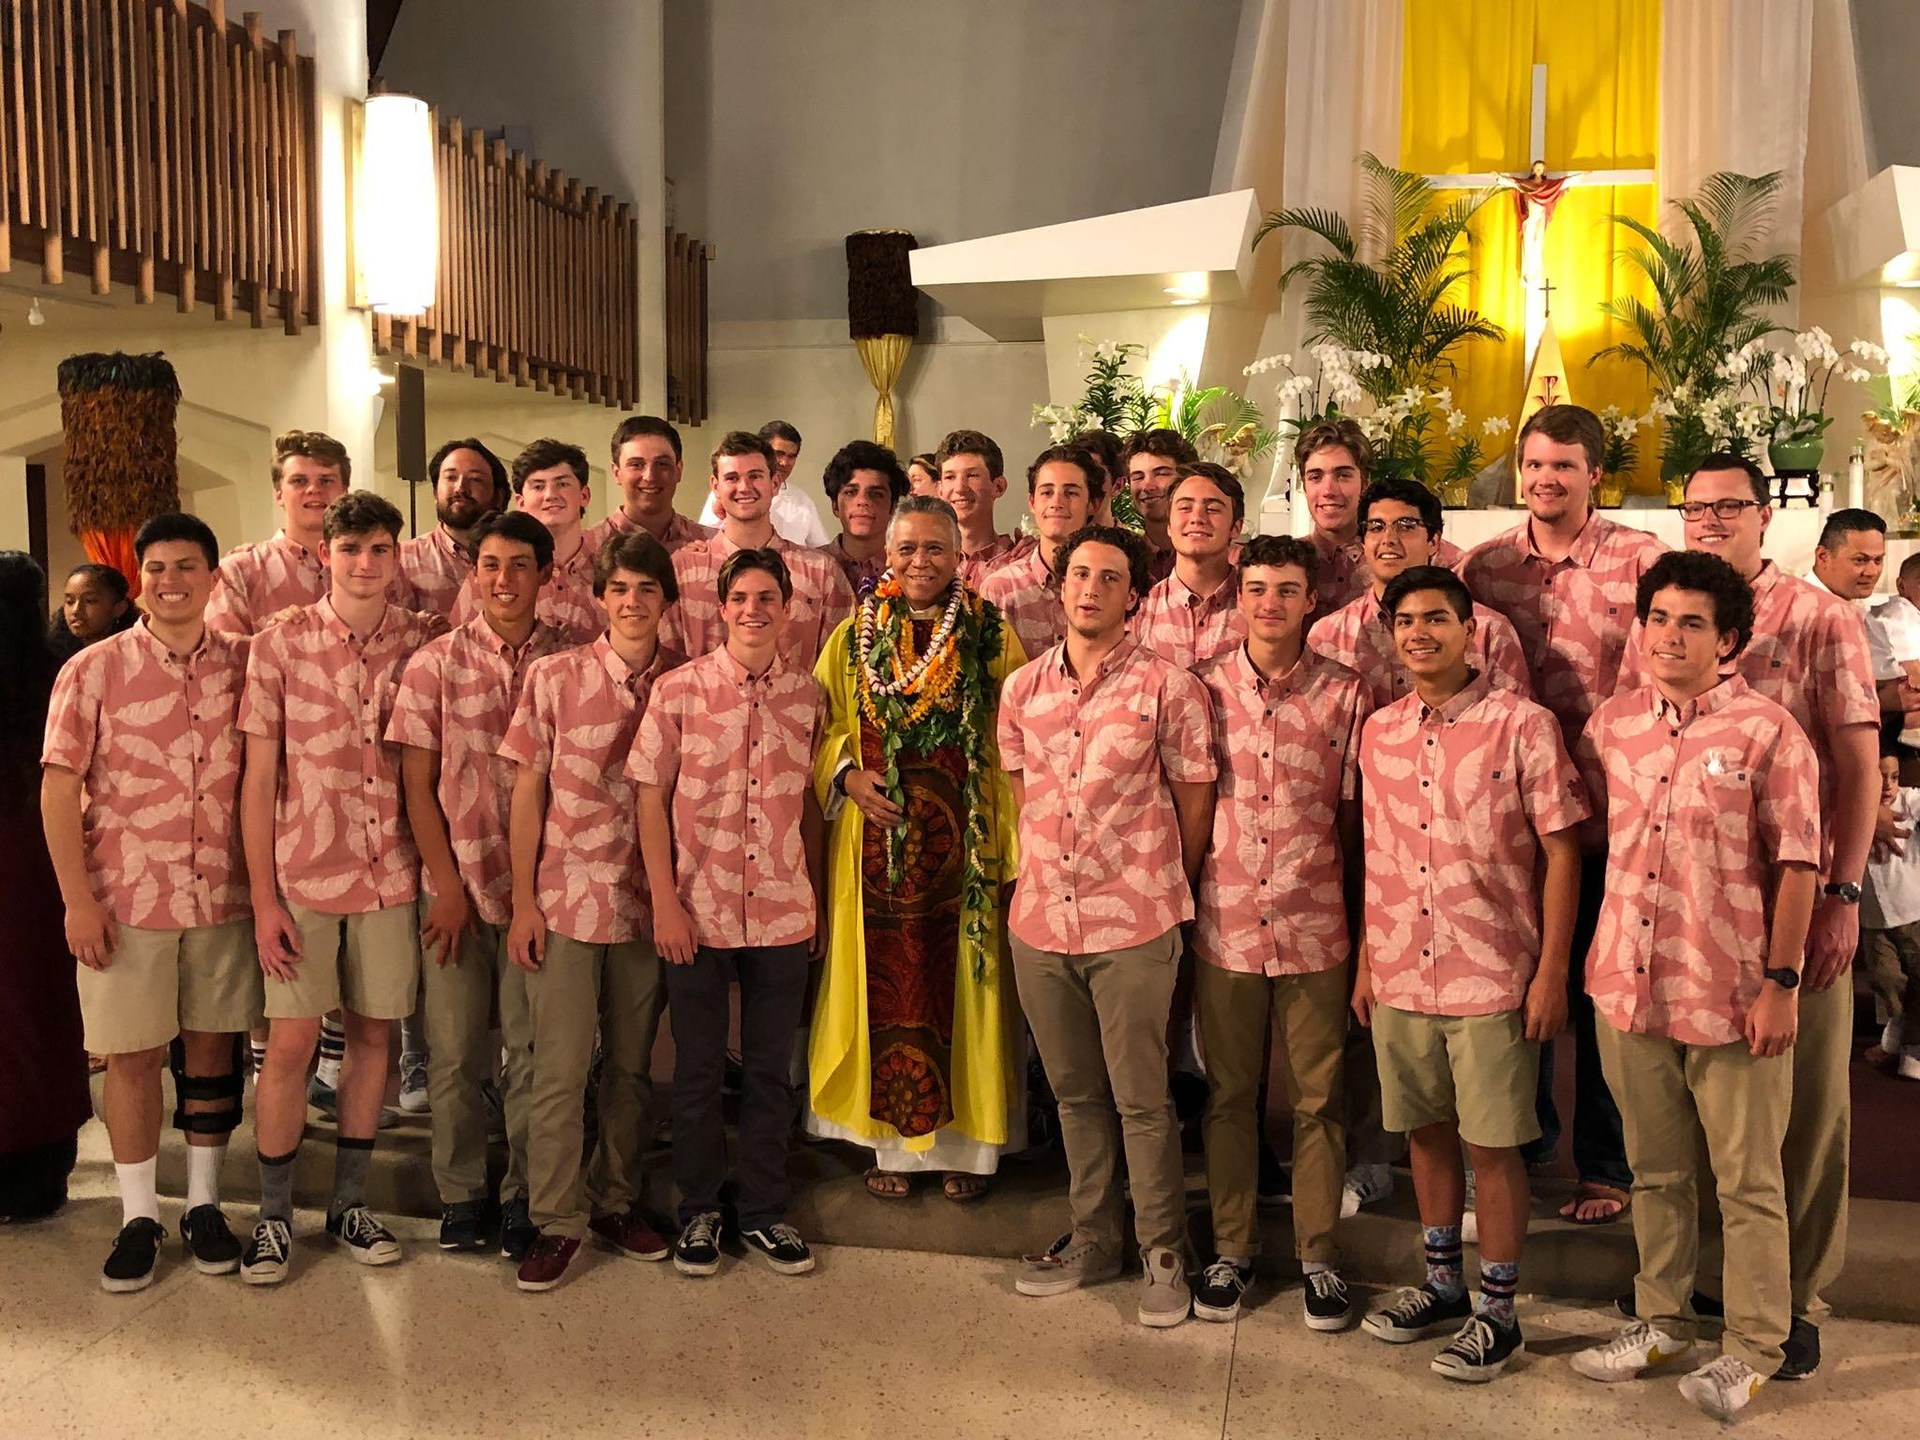 2018 Easter Mass in Hawaii